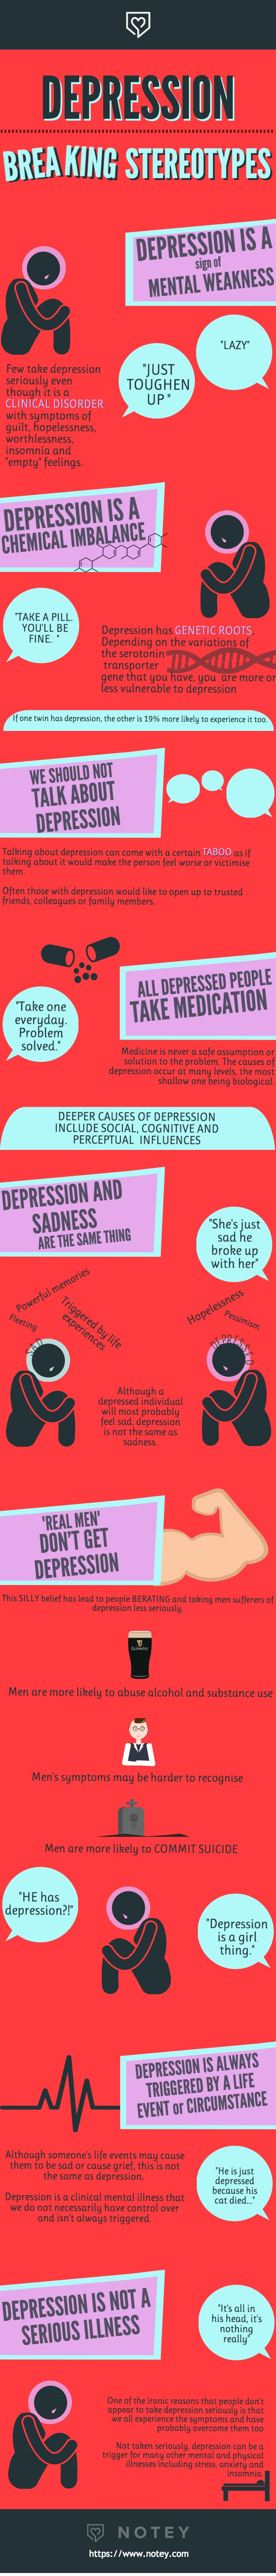 Breaking the Stereotypes Around Depression: everything you didn't know [infographic + article]